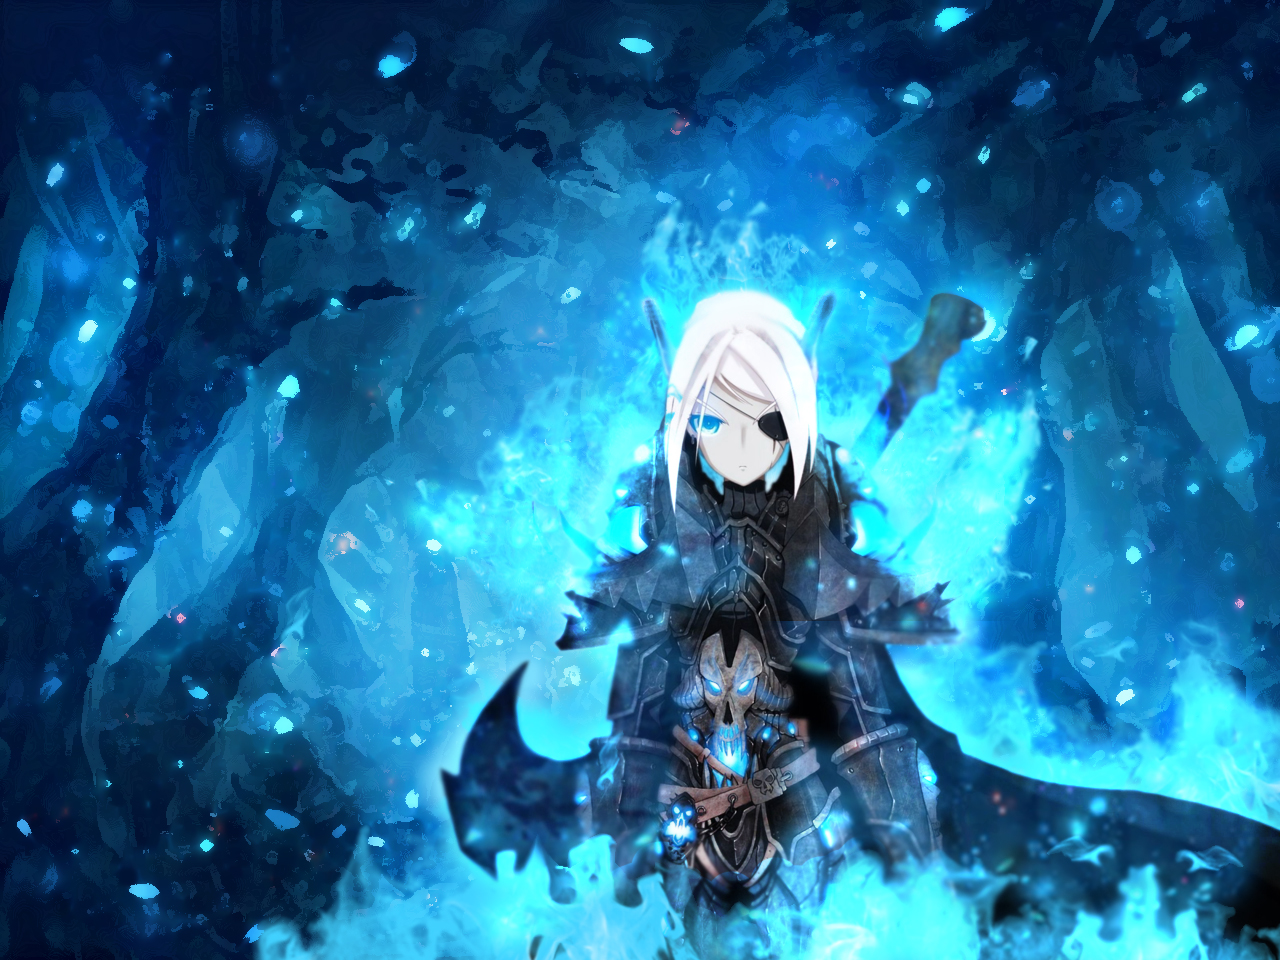 Blue flames dark knight girl anime wallpaper by - Blue anime wallpaper ...